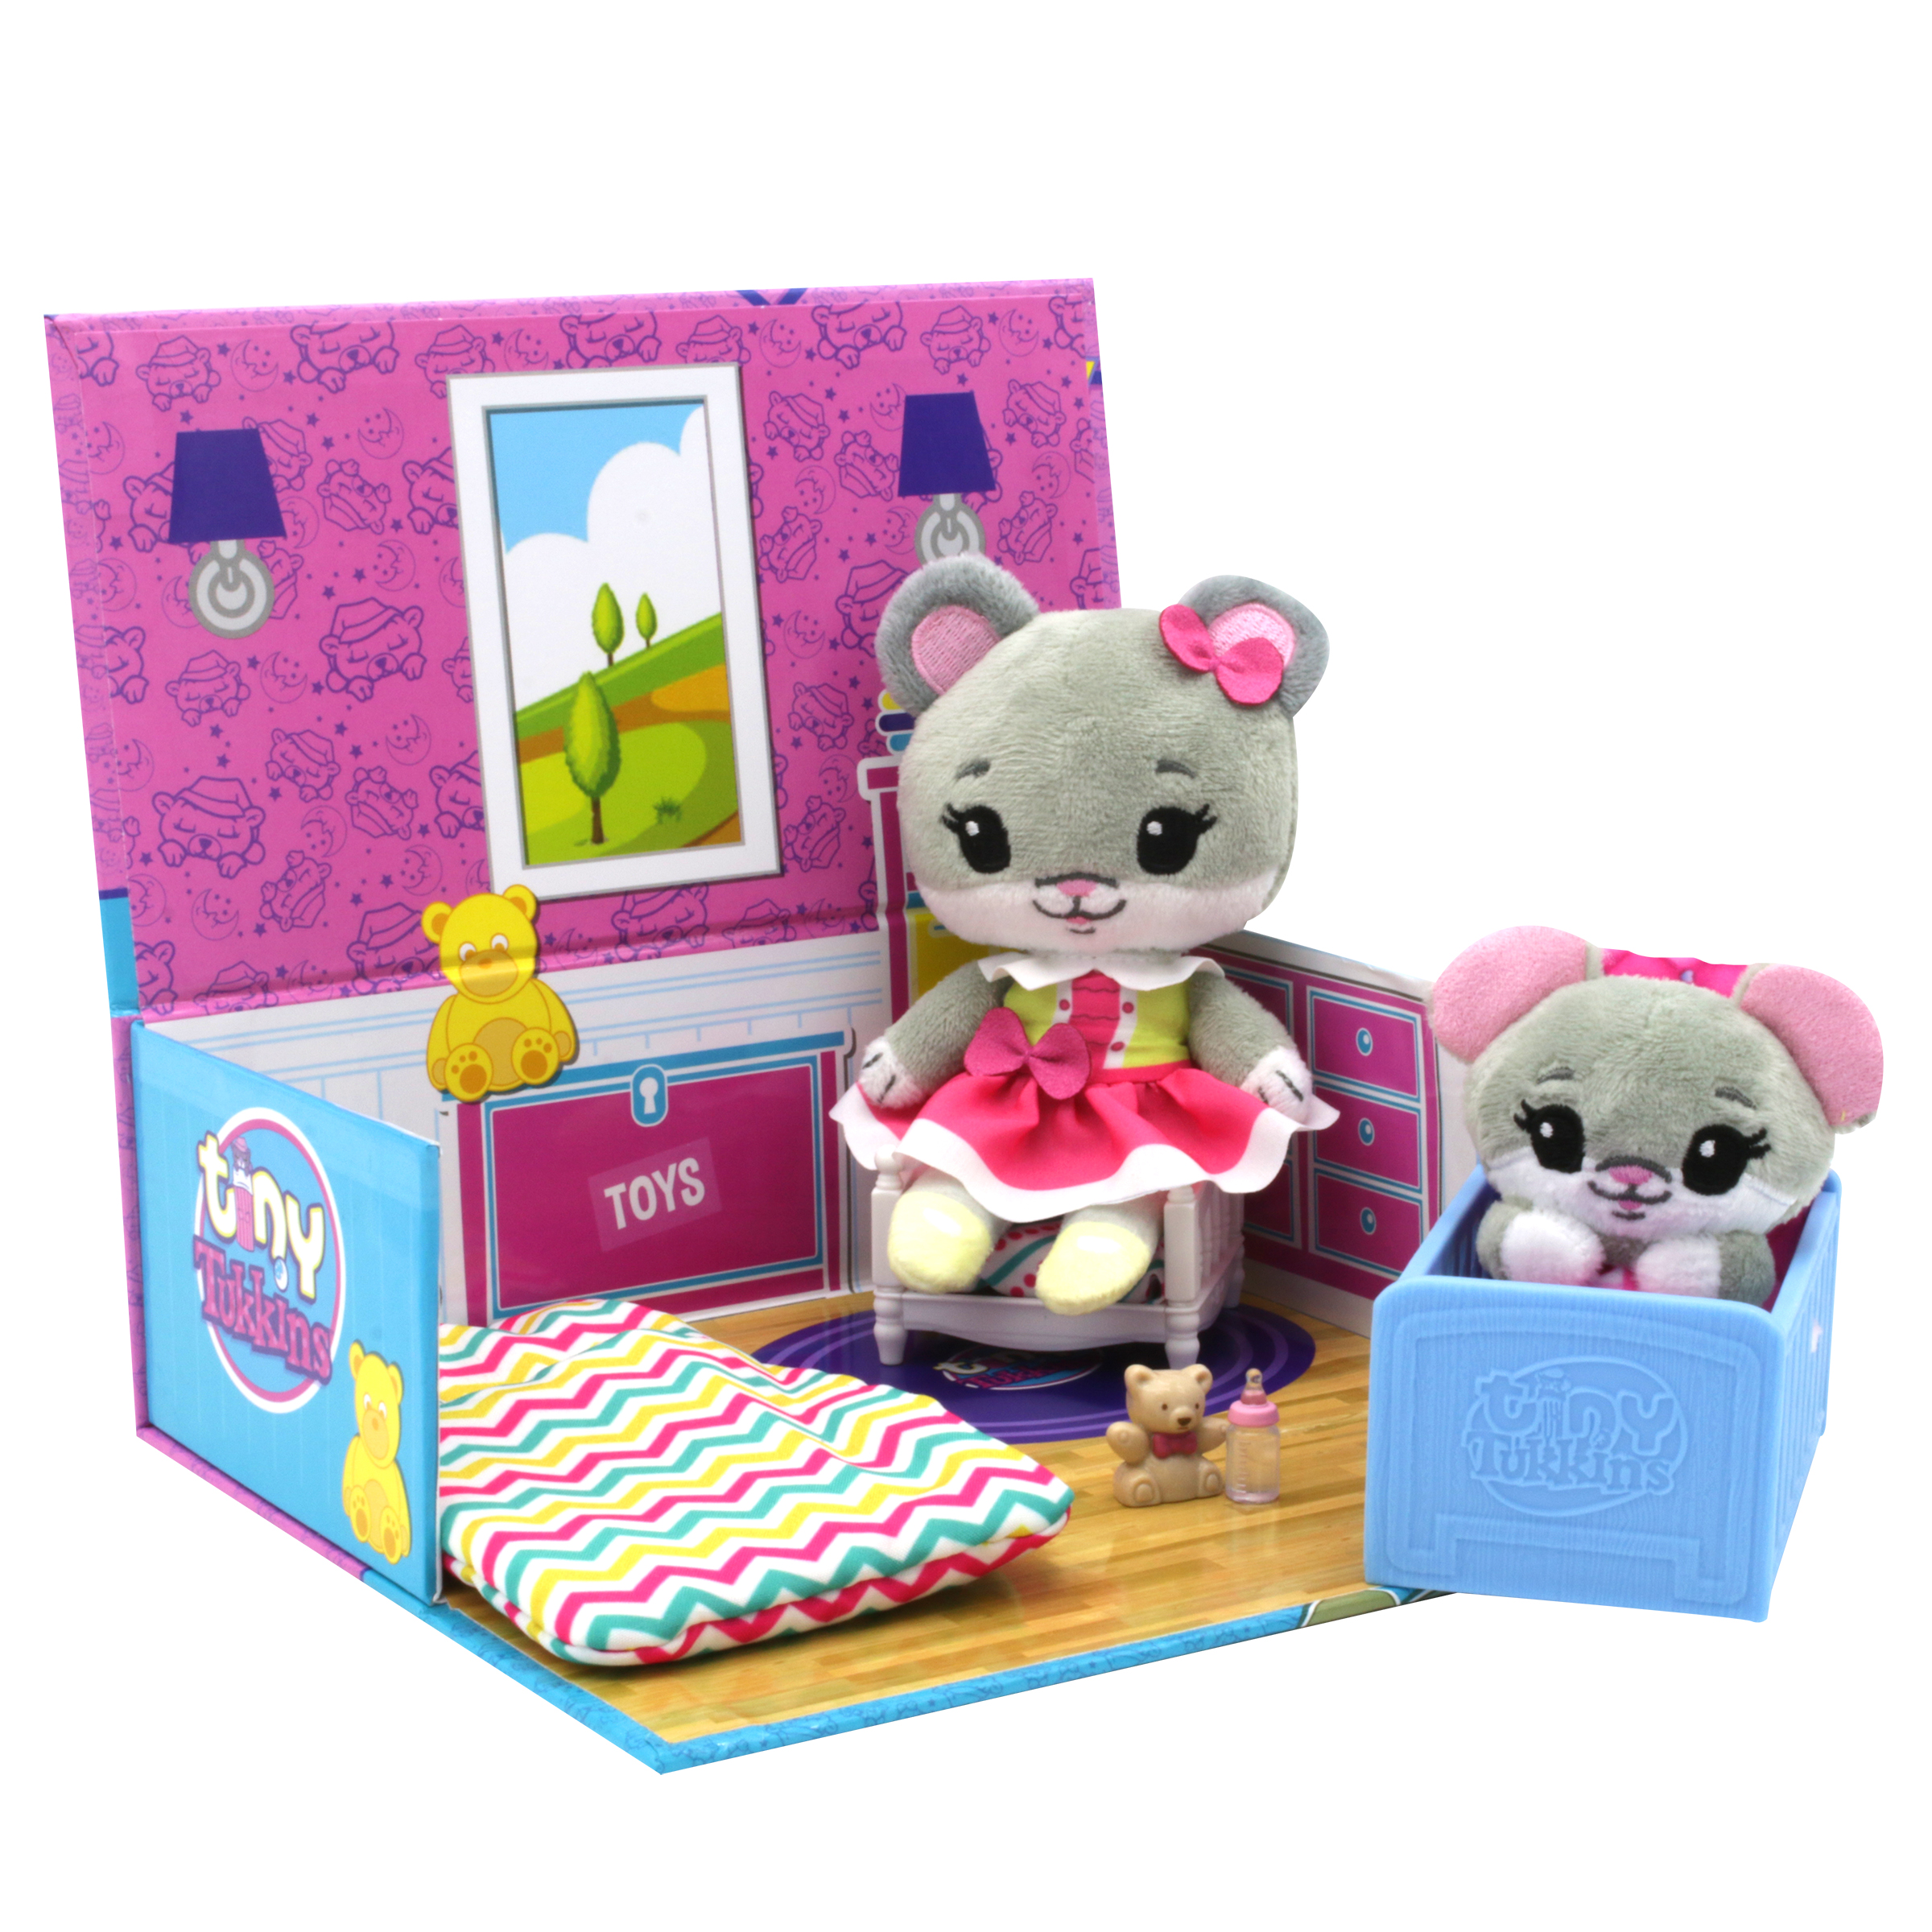 Mouse Tiny Tukkins Playset Assortment with Plush Stuffed Character